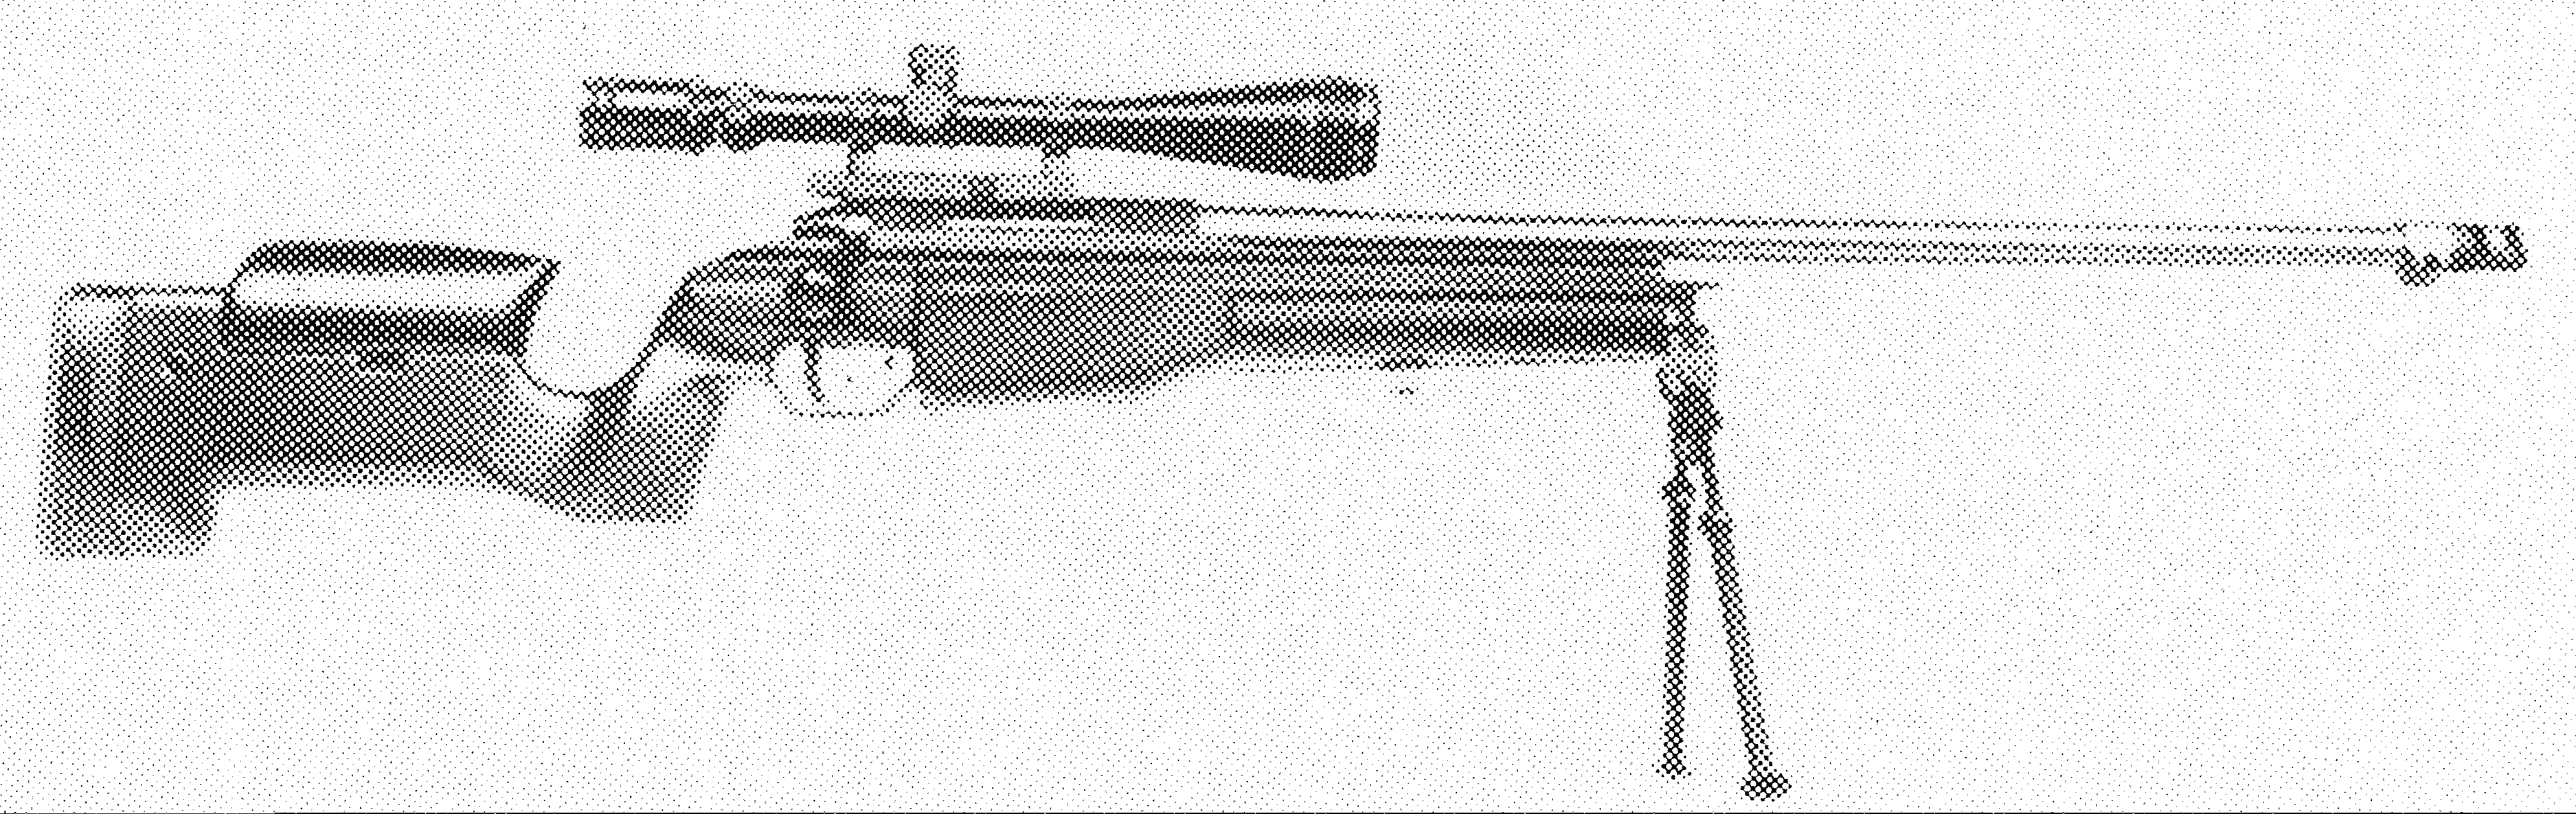 TRG-21